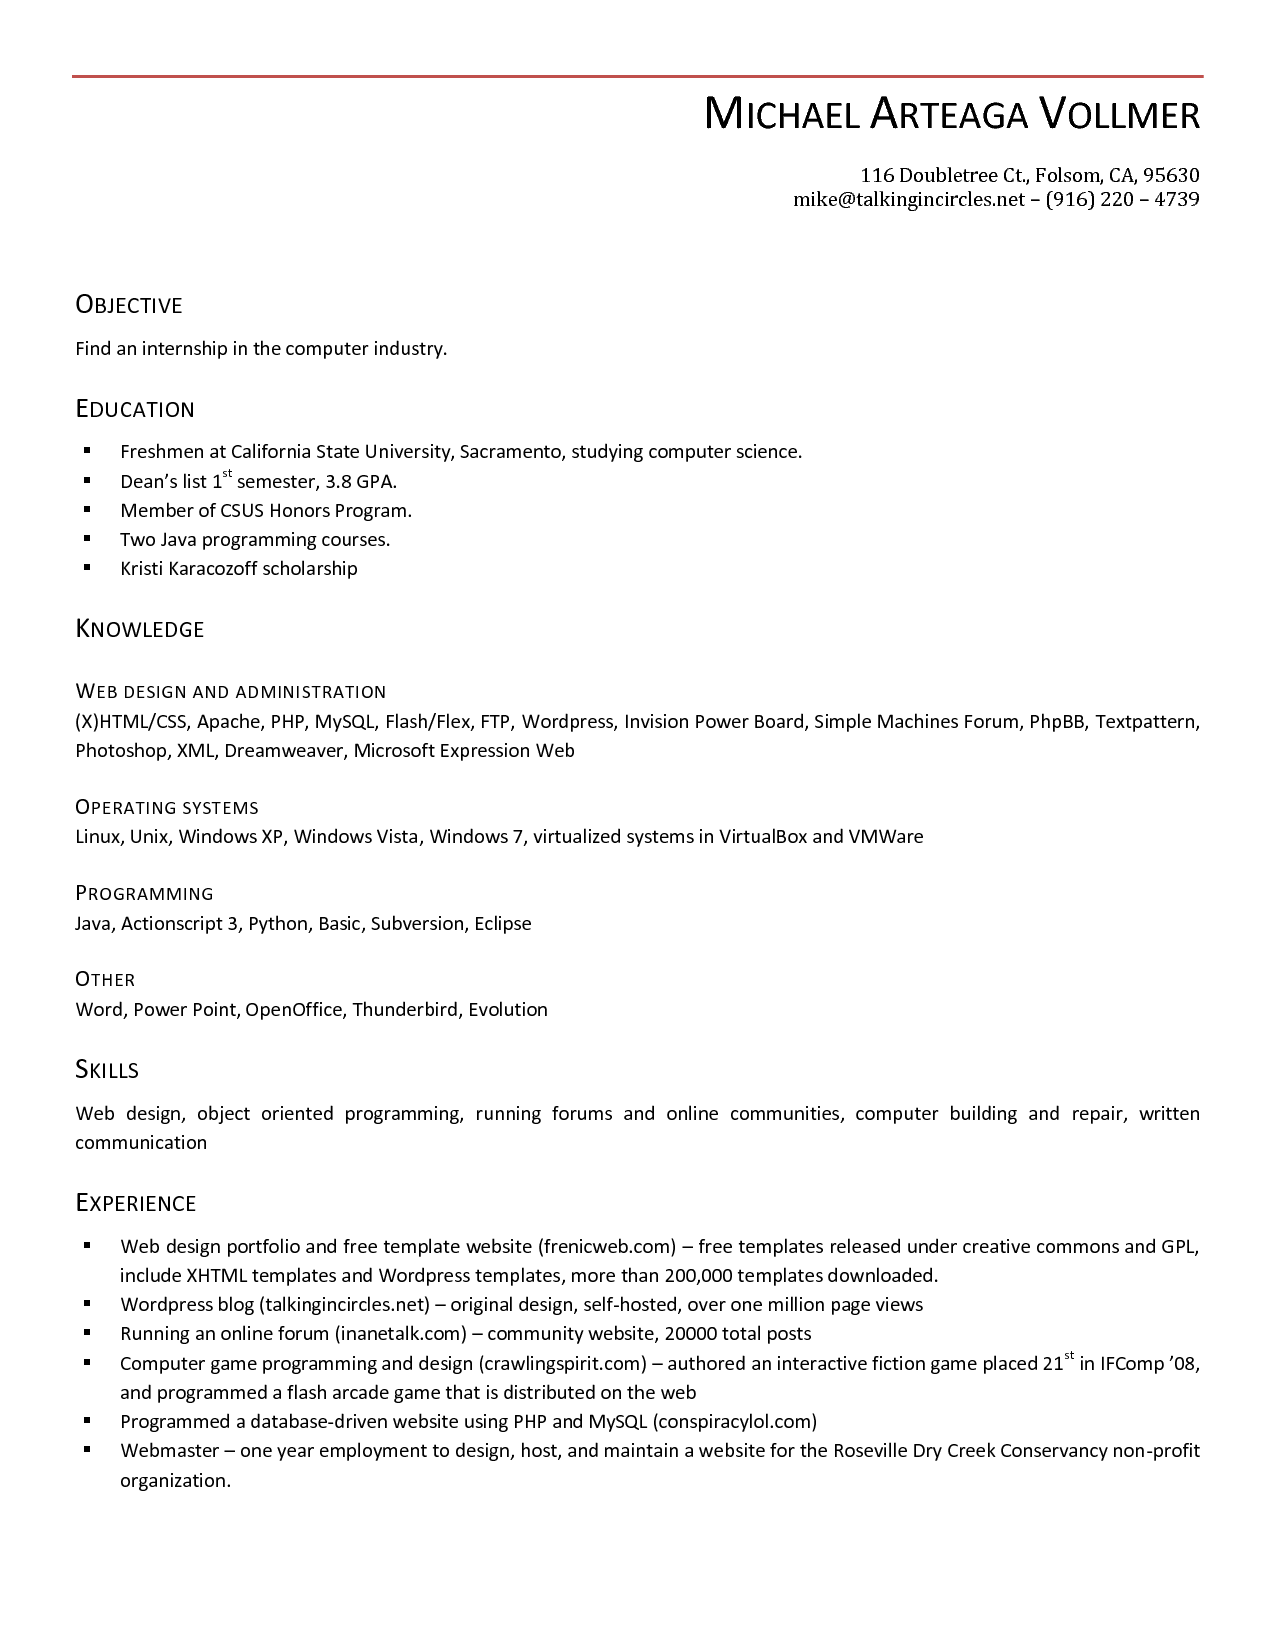 Resume templates free download for microsoft word legal template resume templates free download for microsoft word legal template best create professional resumes online simple openo yelopaper Images